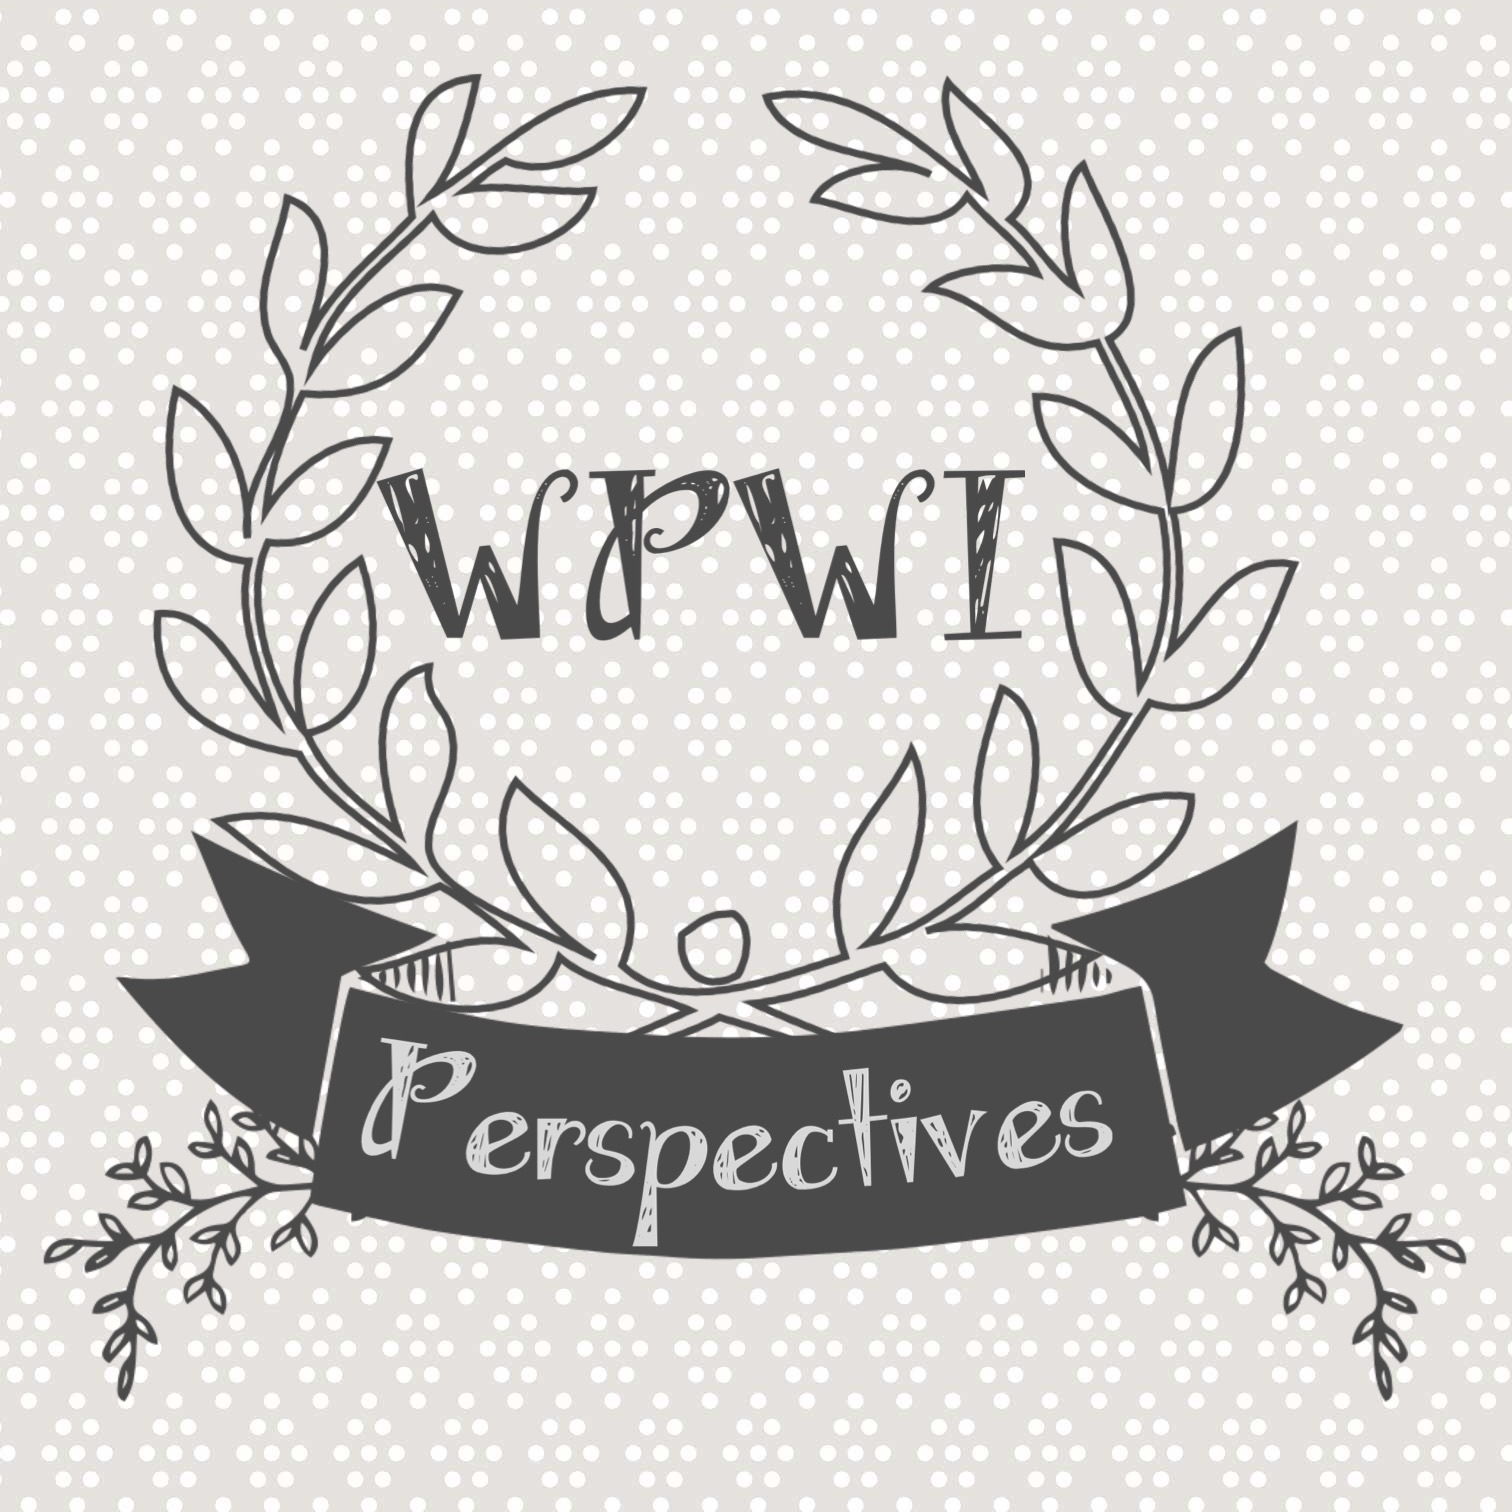 WPWI Perspective